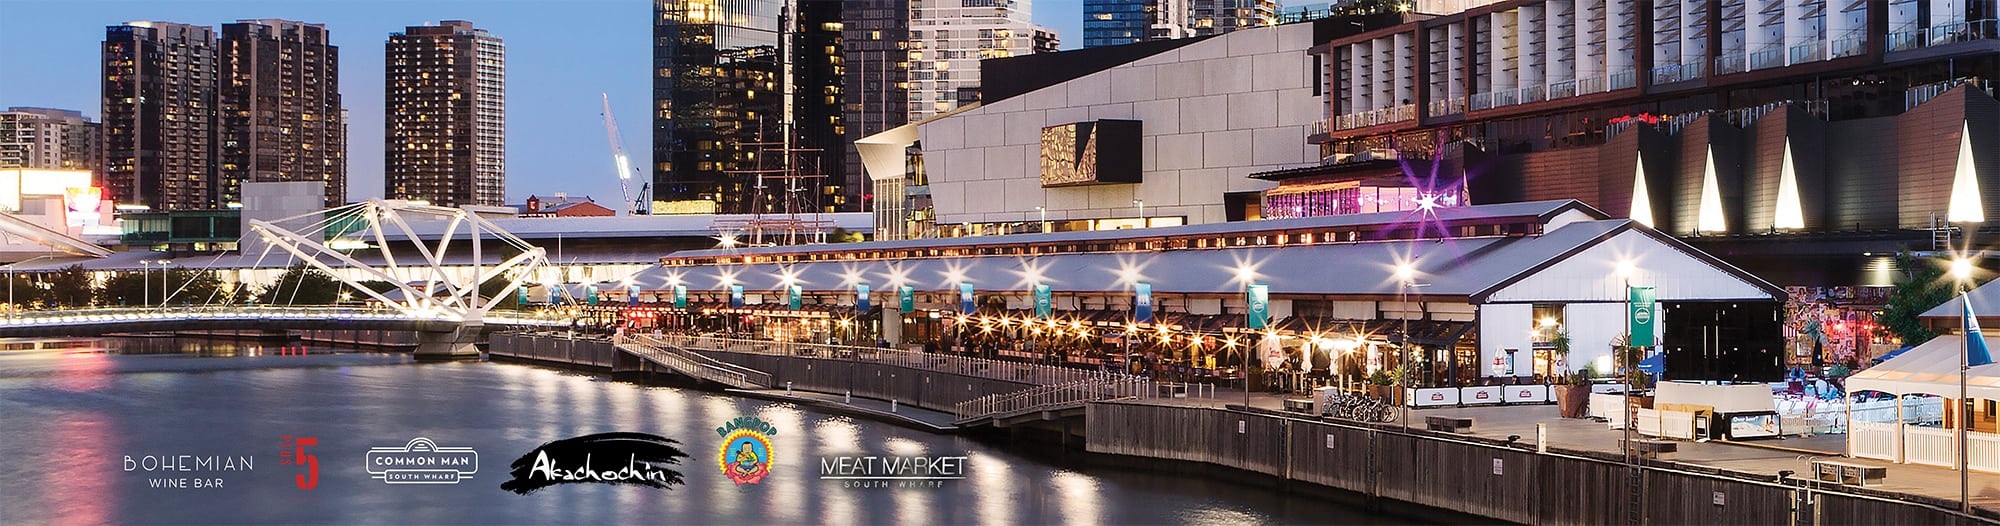 south wharf restaurants Melbourne